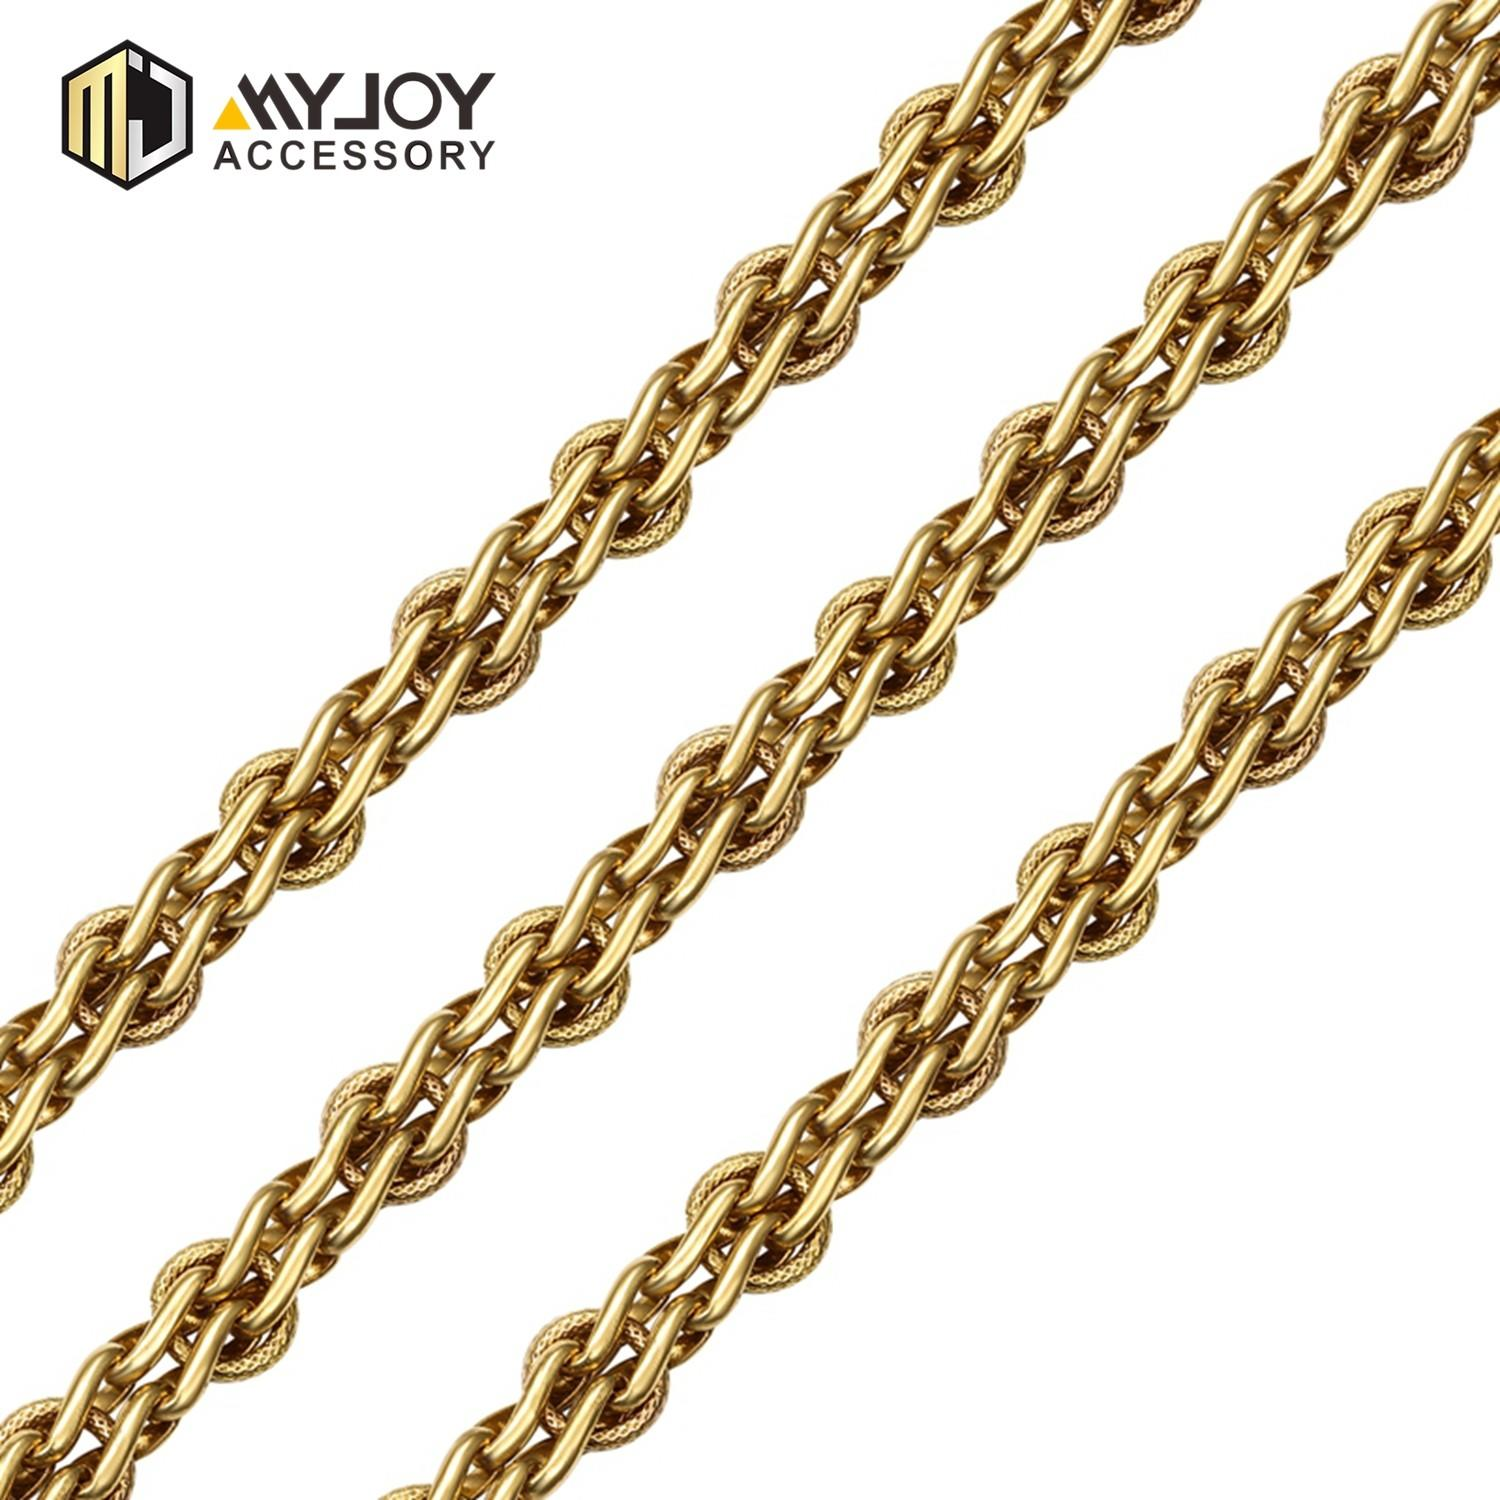 MYJOY zinc chain strap company for bags-3